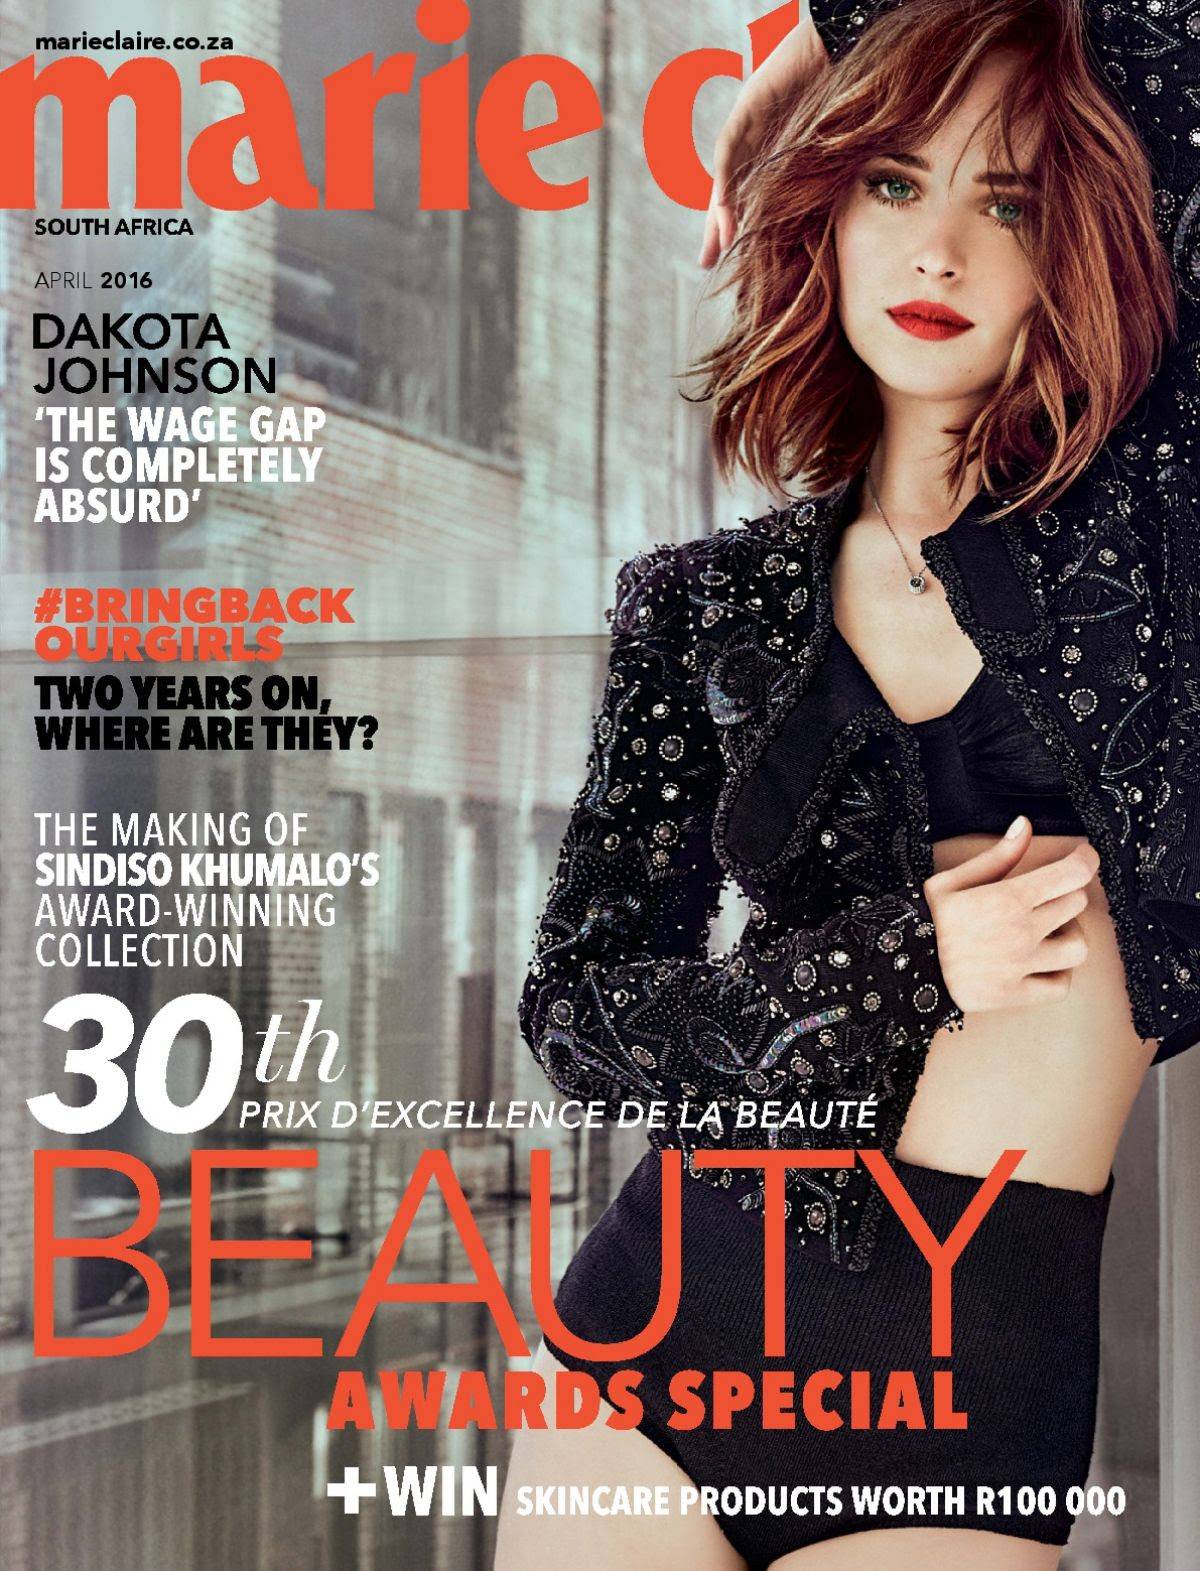 DAKOTA HOHNSON in Marie Claire Magazine, South Africa April 2016 Issue